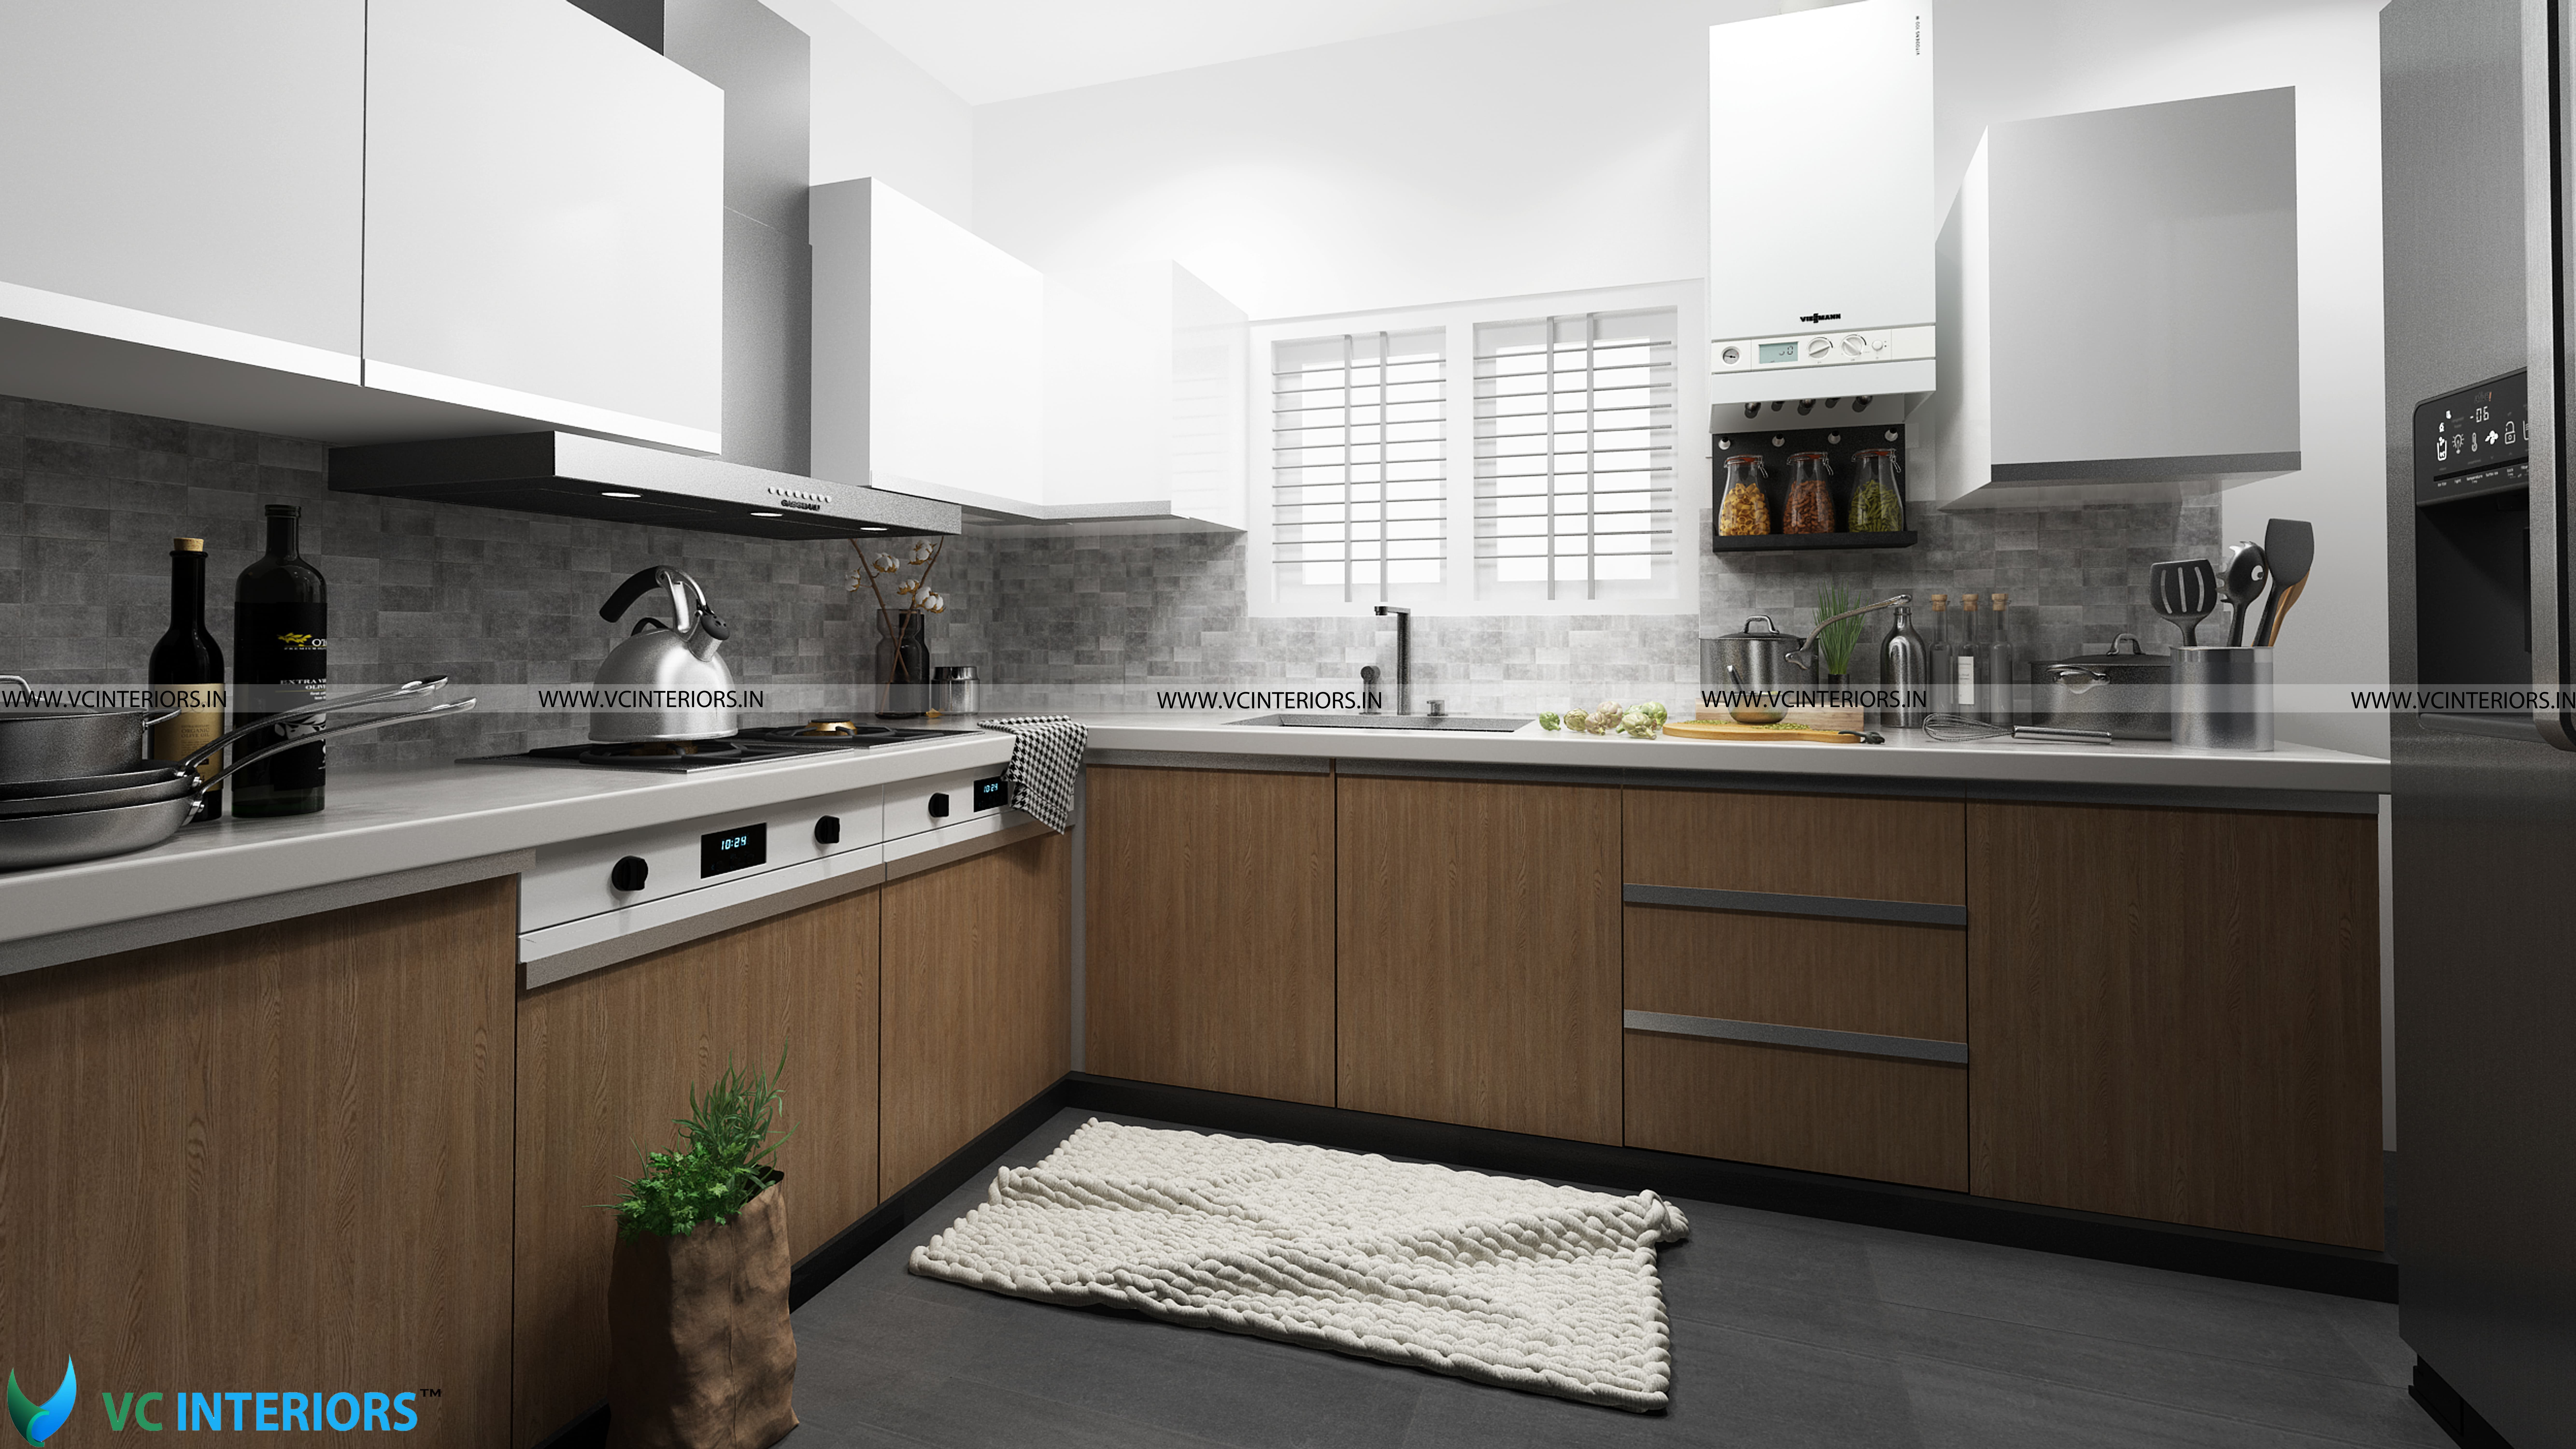 VC Interiors Modular Kitchen